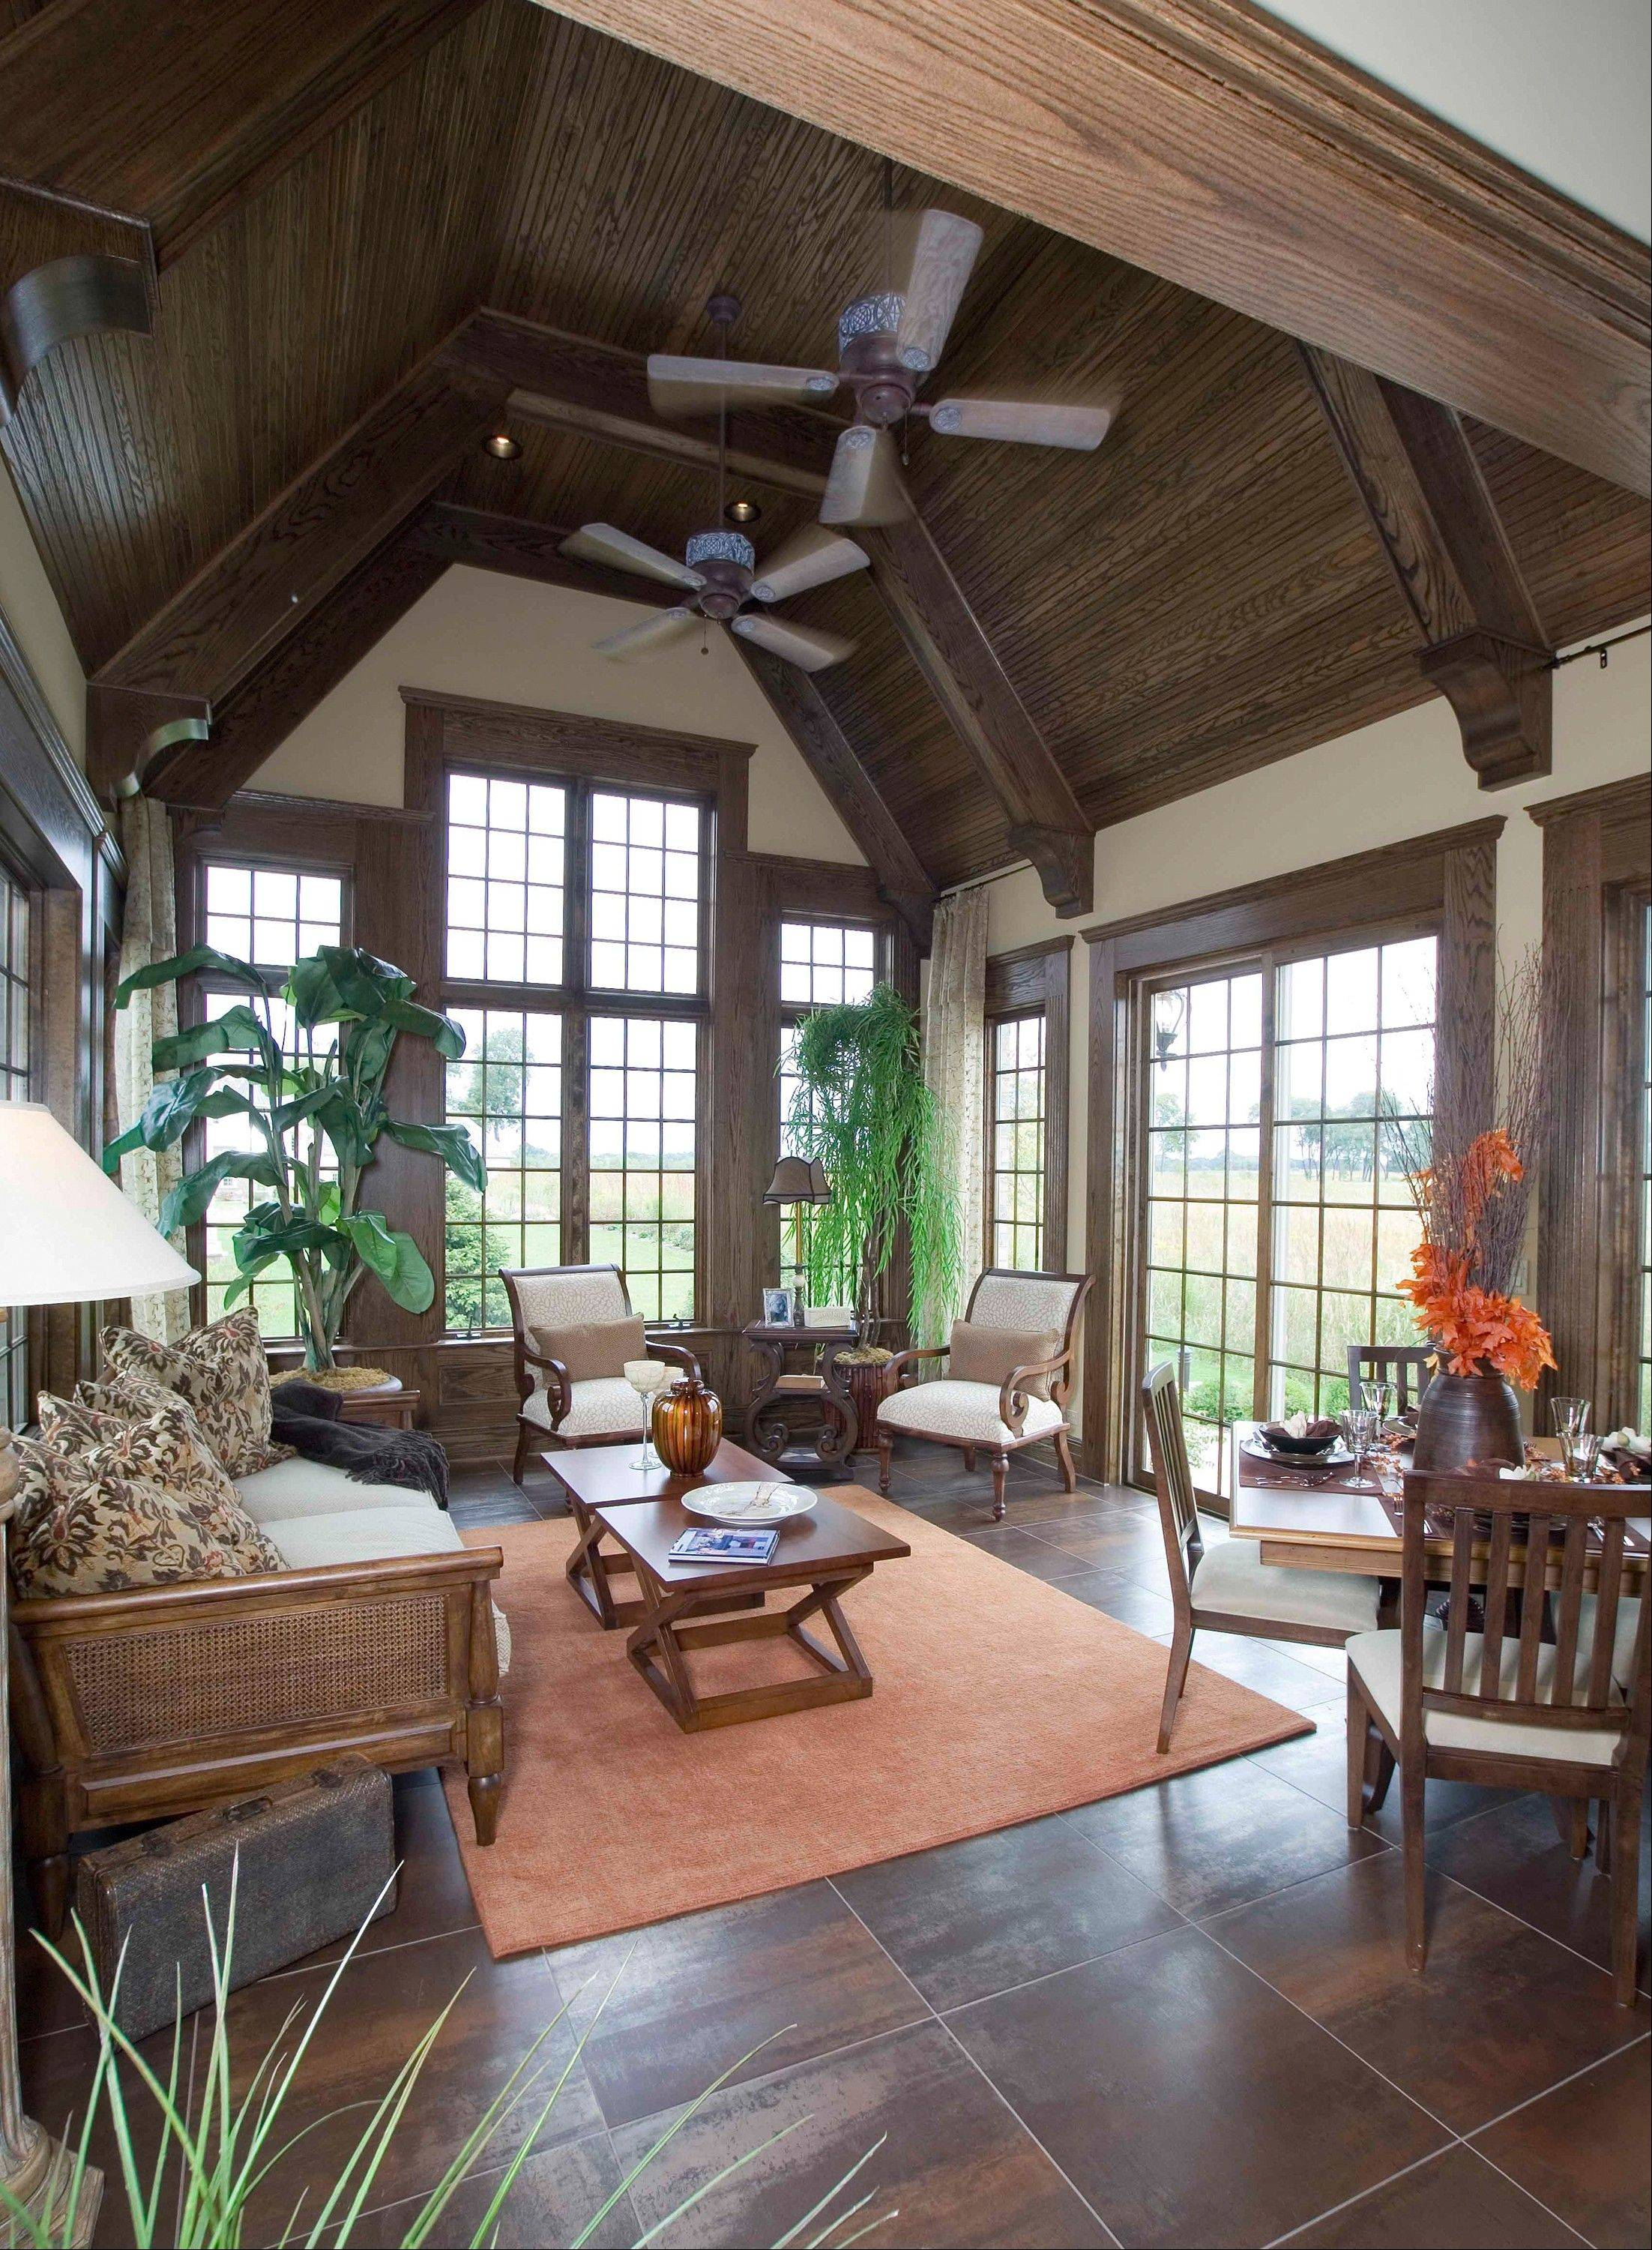 Sun rooms and morning rooms are cozy spaces off the kitchen where homeowners enjoy much natural light.